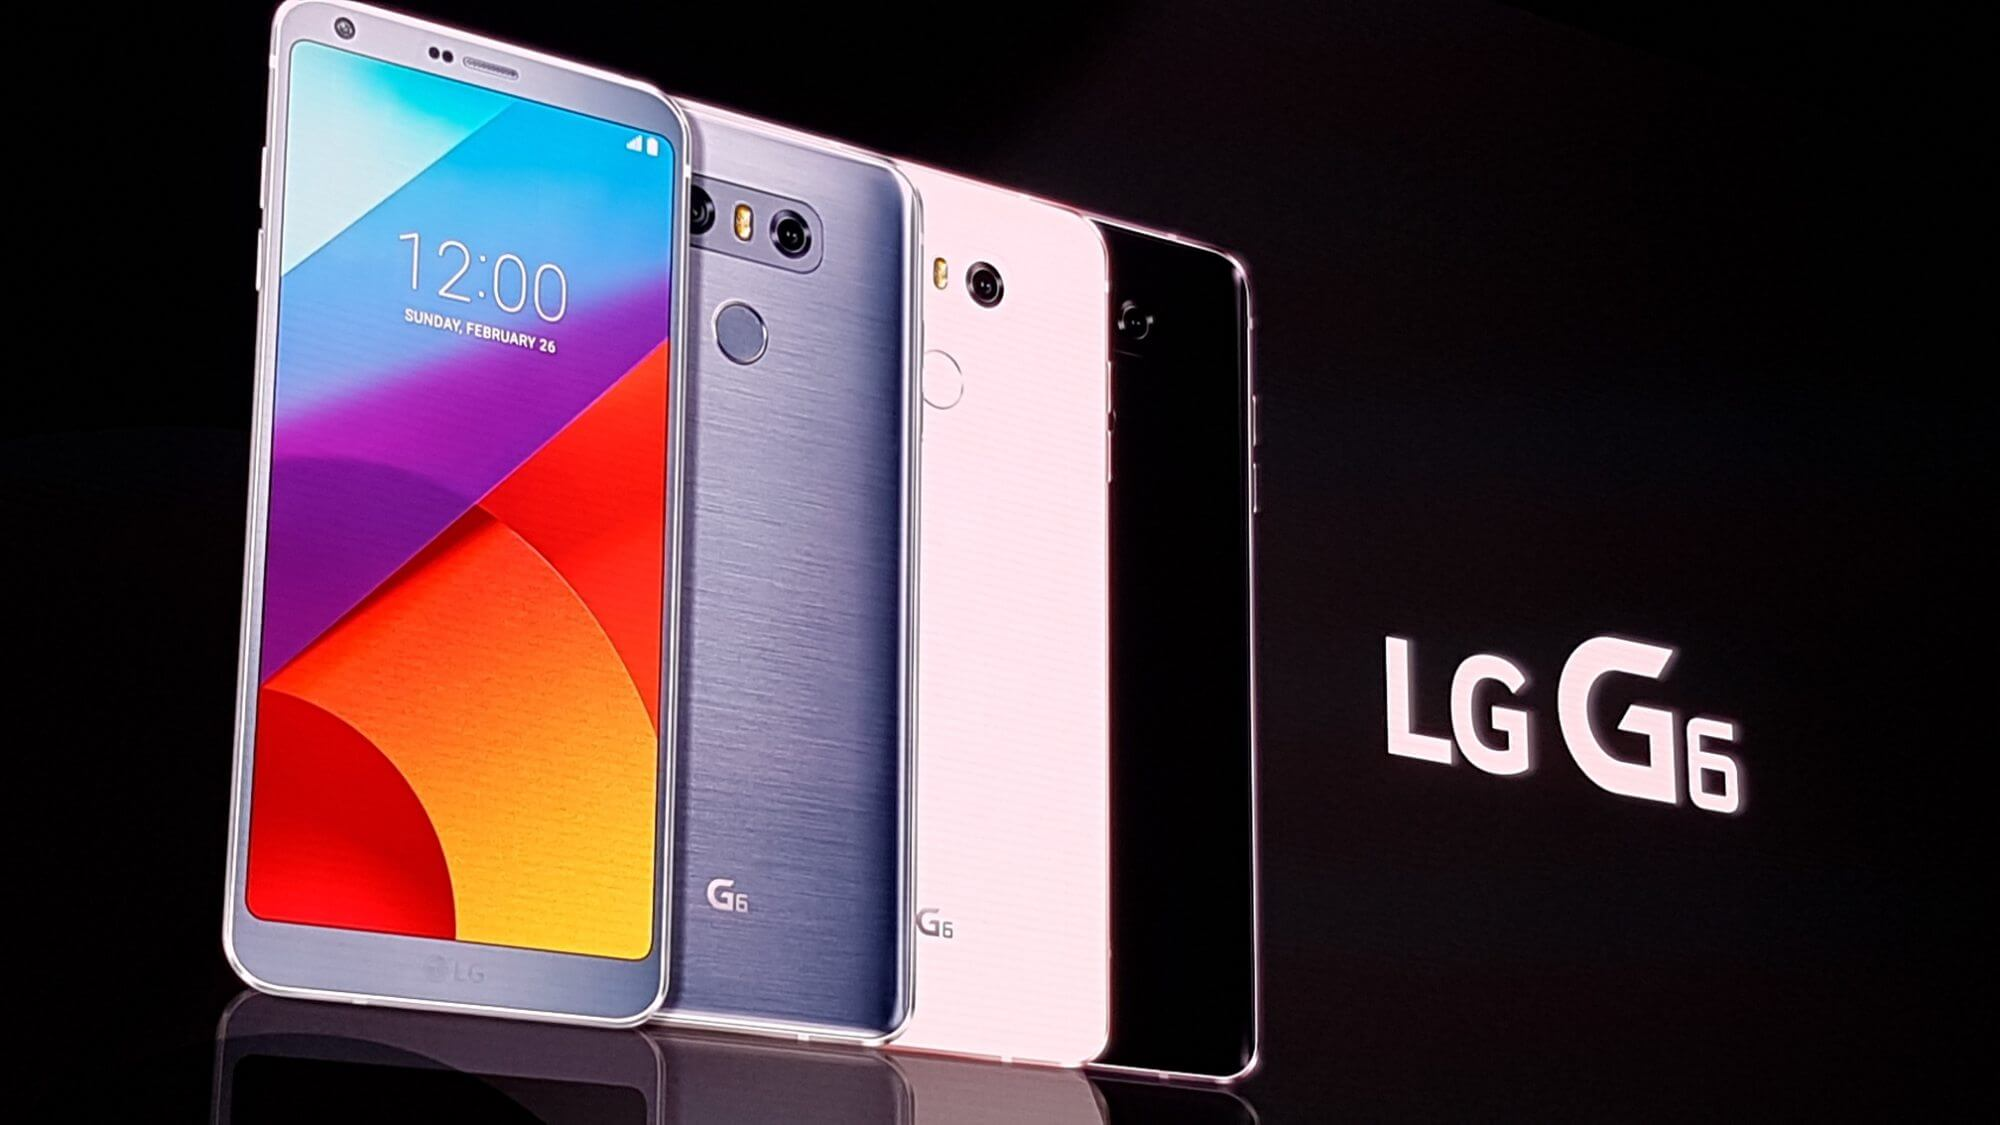 LG G6 é lançado na Mobile World Congress